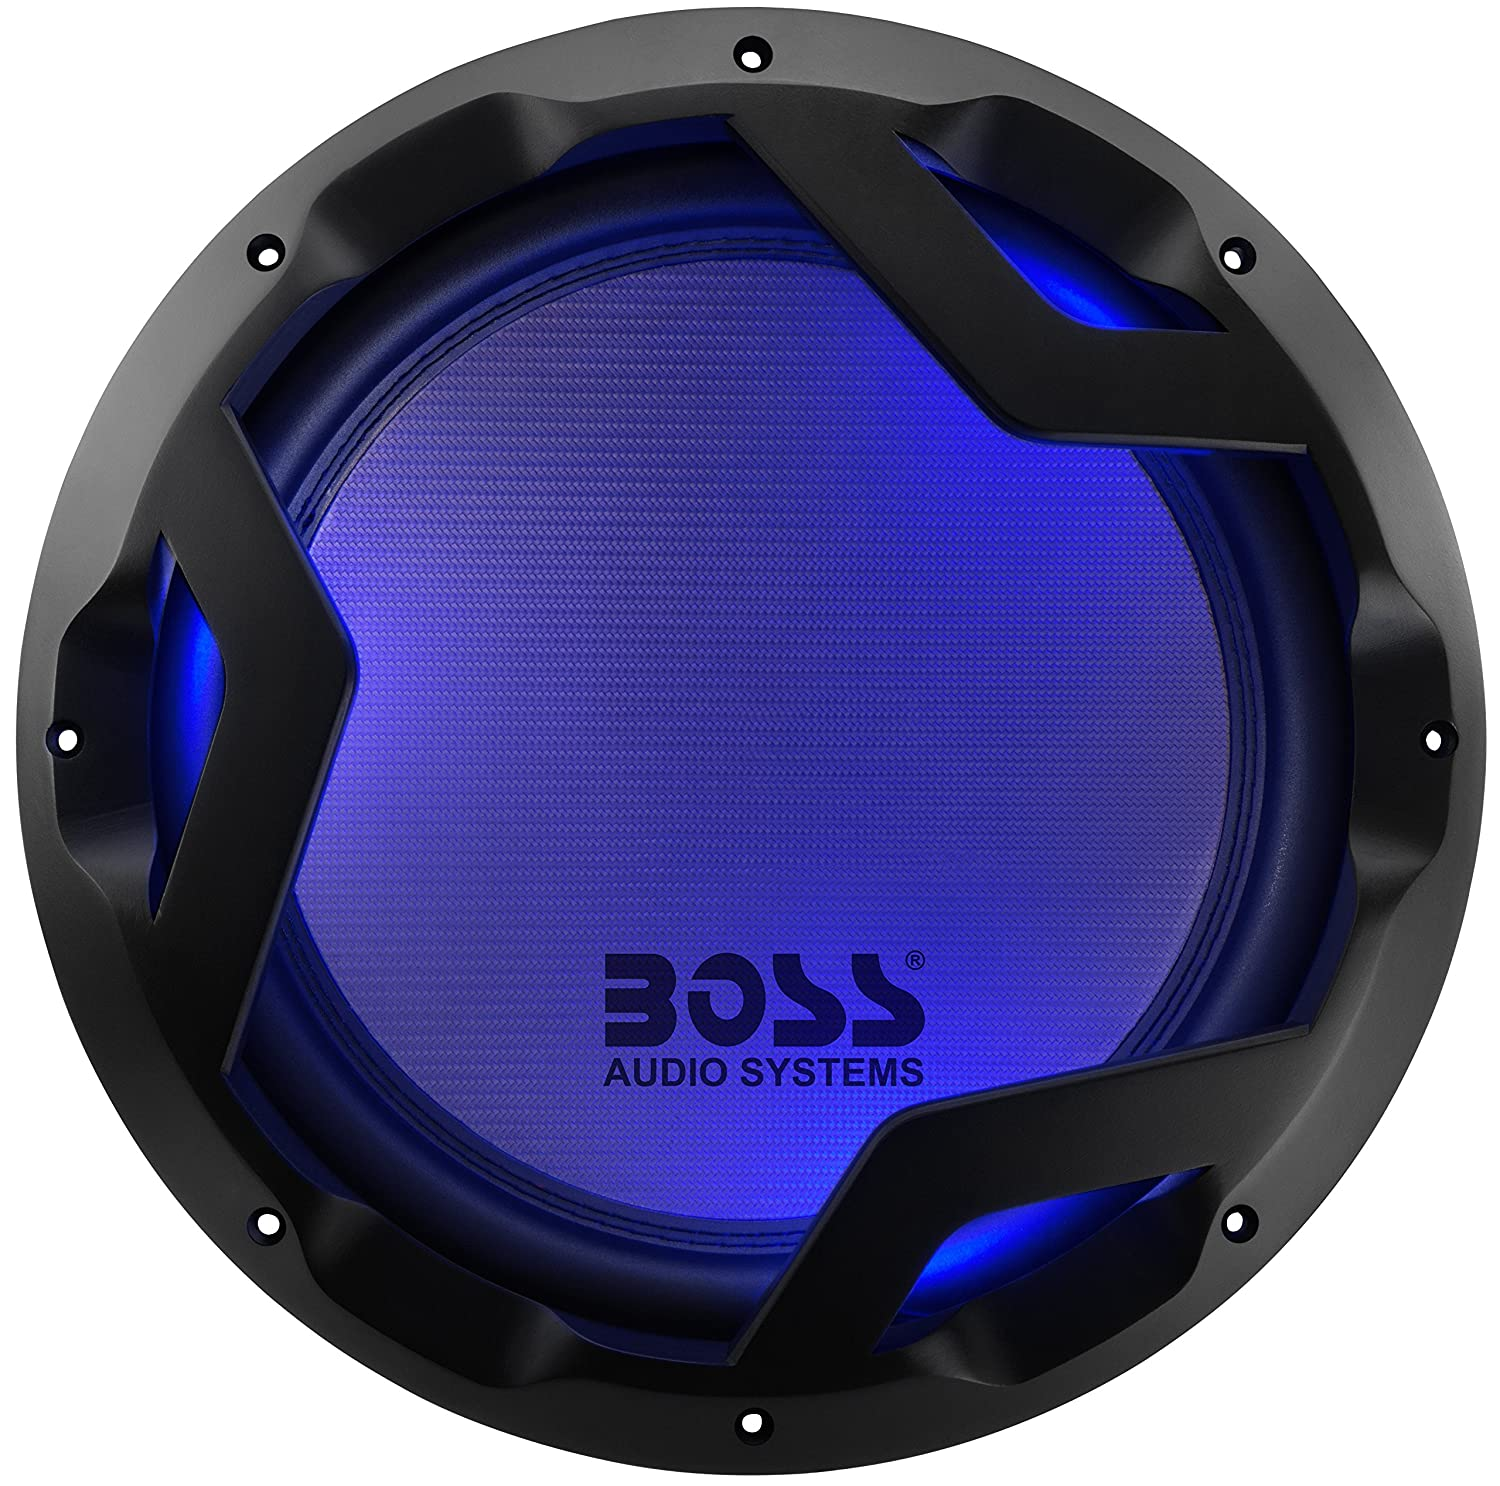 Boss Audio Pd12led 1600 Watt 12 Inch Dual 4 Ohm Voice How To Wire Coil Subs Wiring Harness Car Subwoofer Cell Phones Accessories